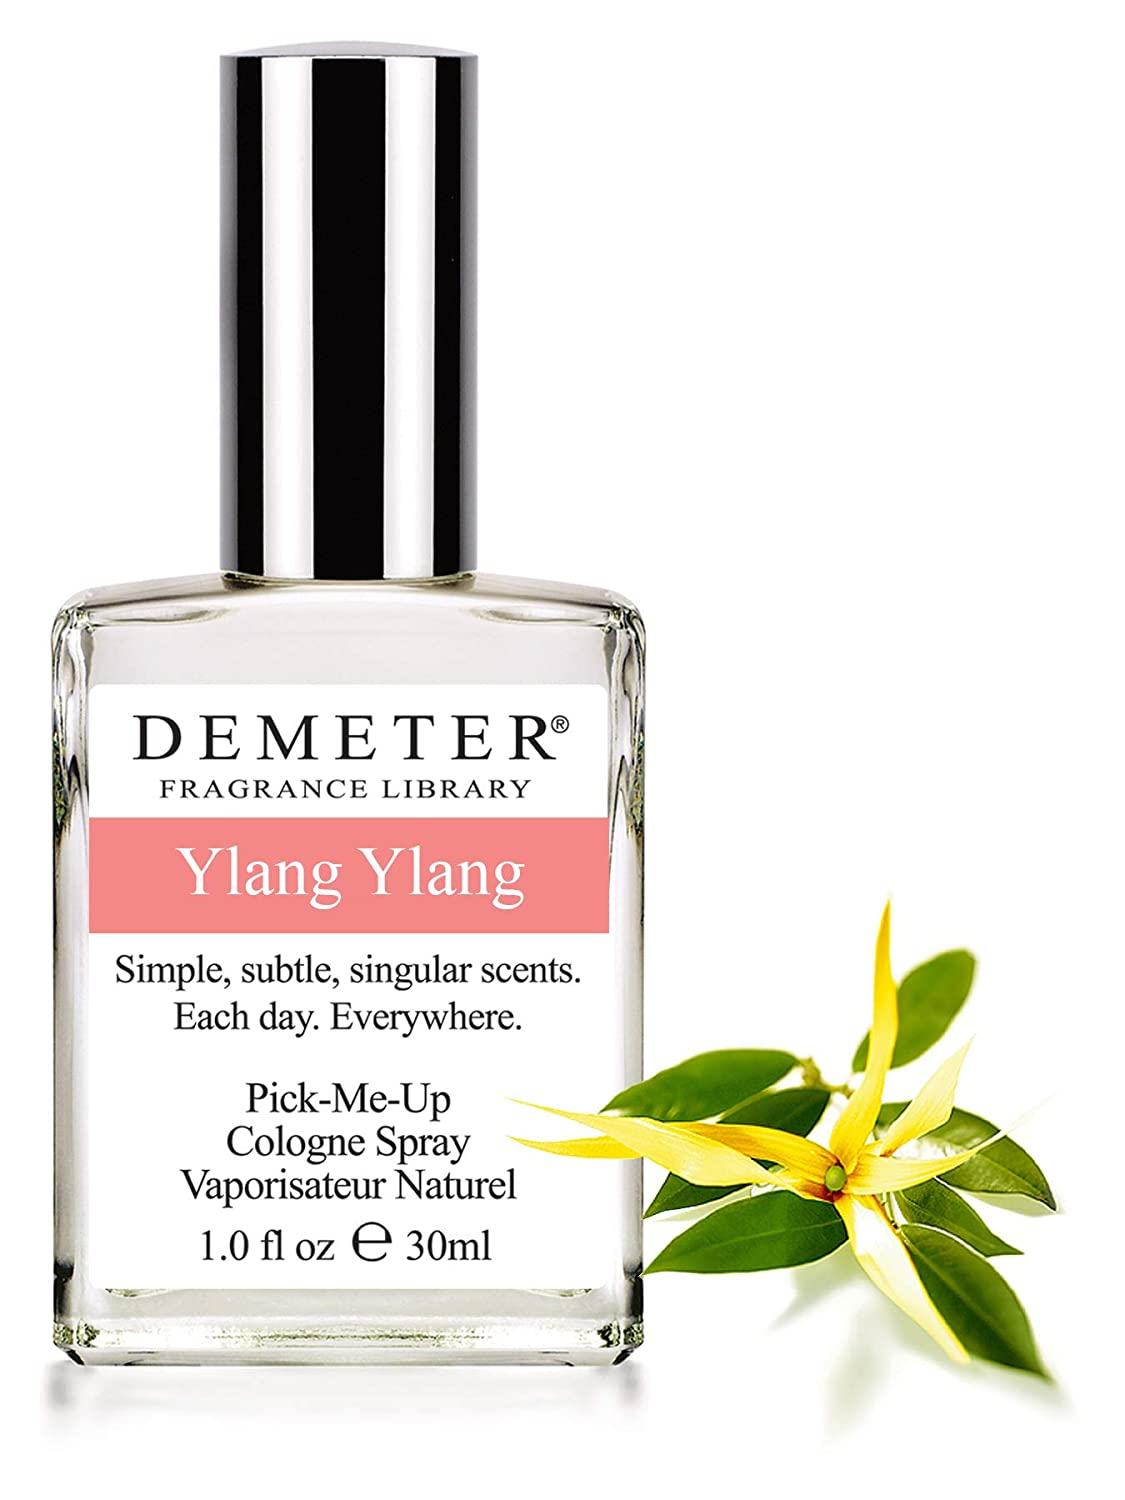 Demeter Trust Fragrance Library - Ylang Cologn Ounce 30 ml Max 70% OFF 1